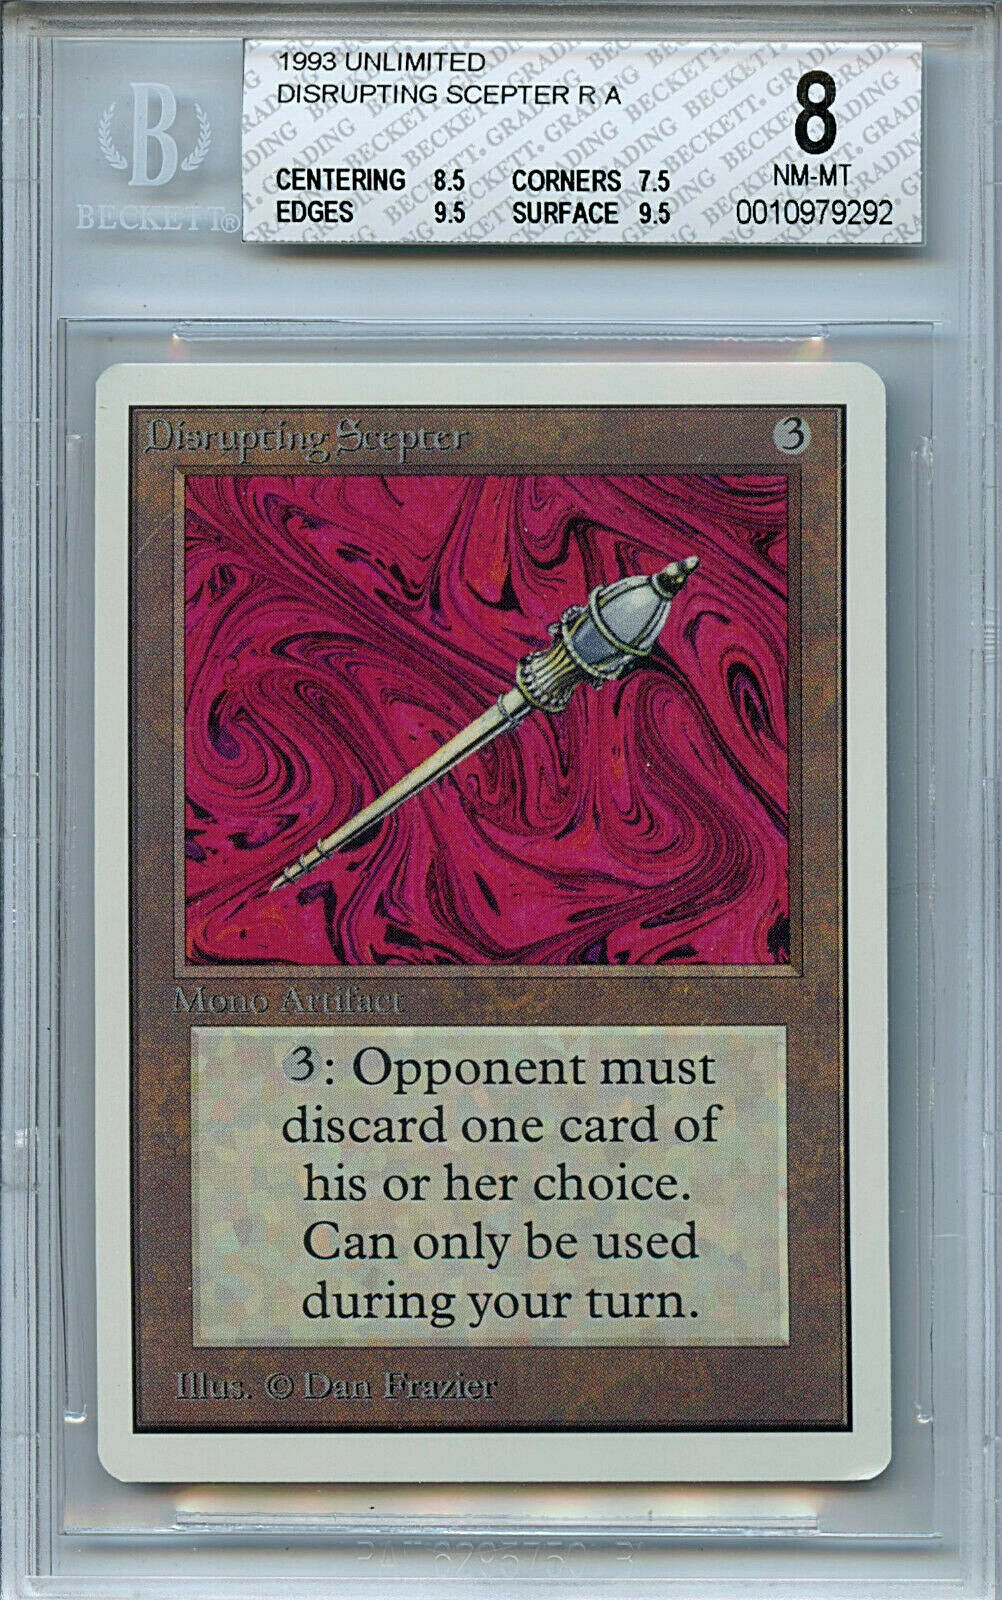 MTG Unlimited Disrupting Scepter BGS BGS BGS 8.0 (8) NM-MT Card Magic Amricons 9292 ca3bfe